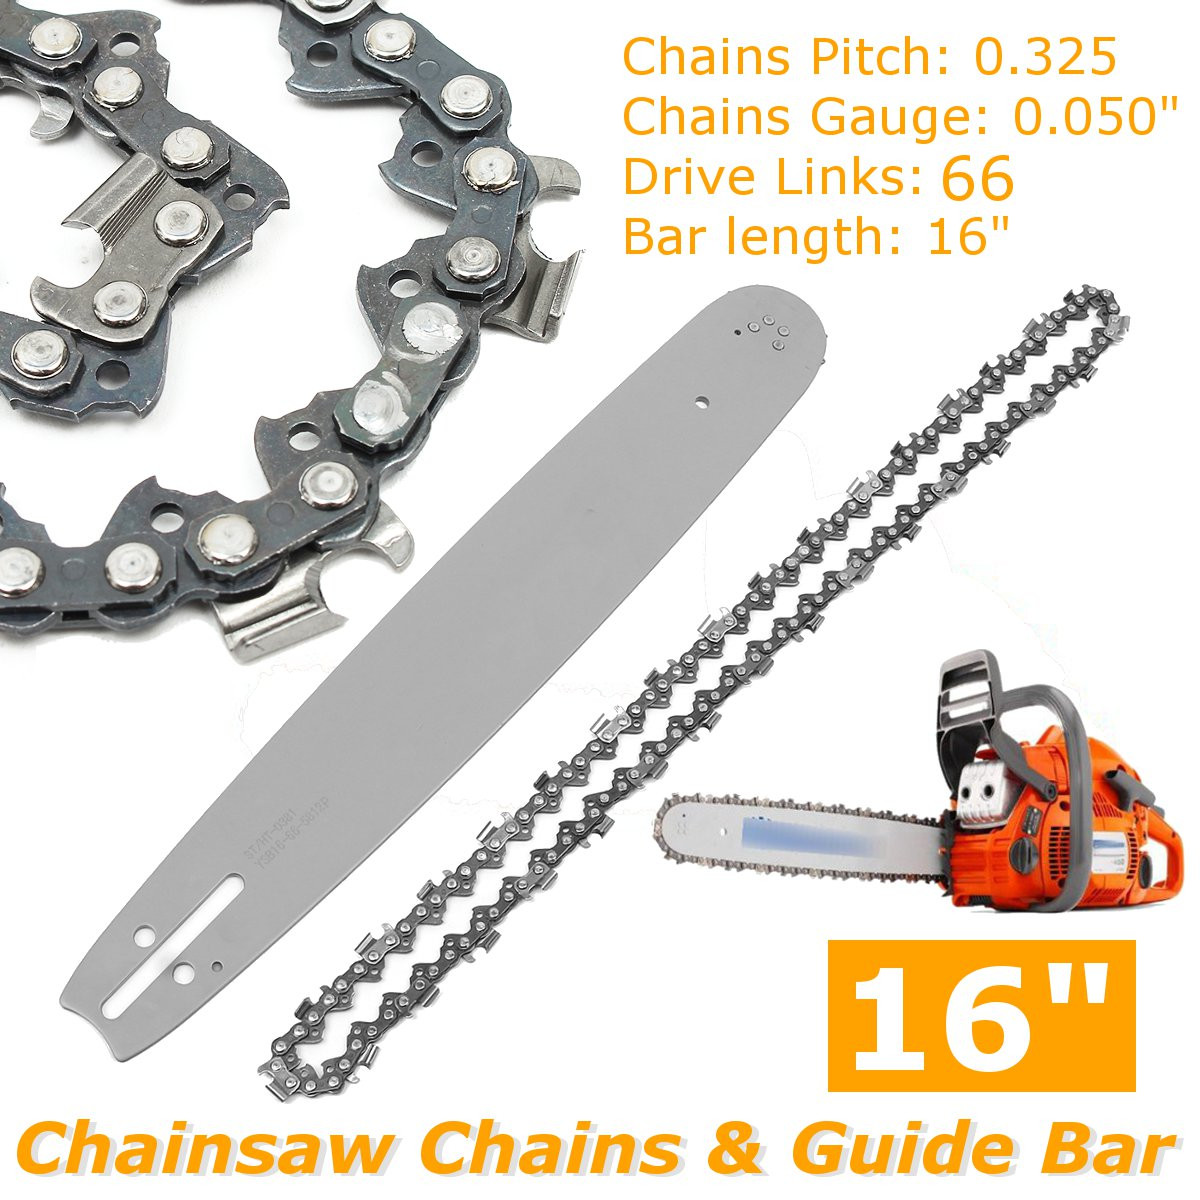 2Pcs/set  16 Inch Chainsaw Chains +Guide Bar Semi Chisel Chain For Husqvarna POULAN 36 41 50 51 55  346XP 450 455 460 66DL